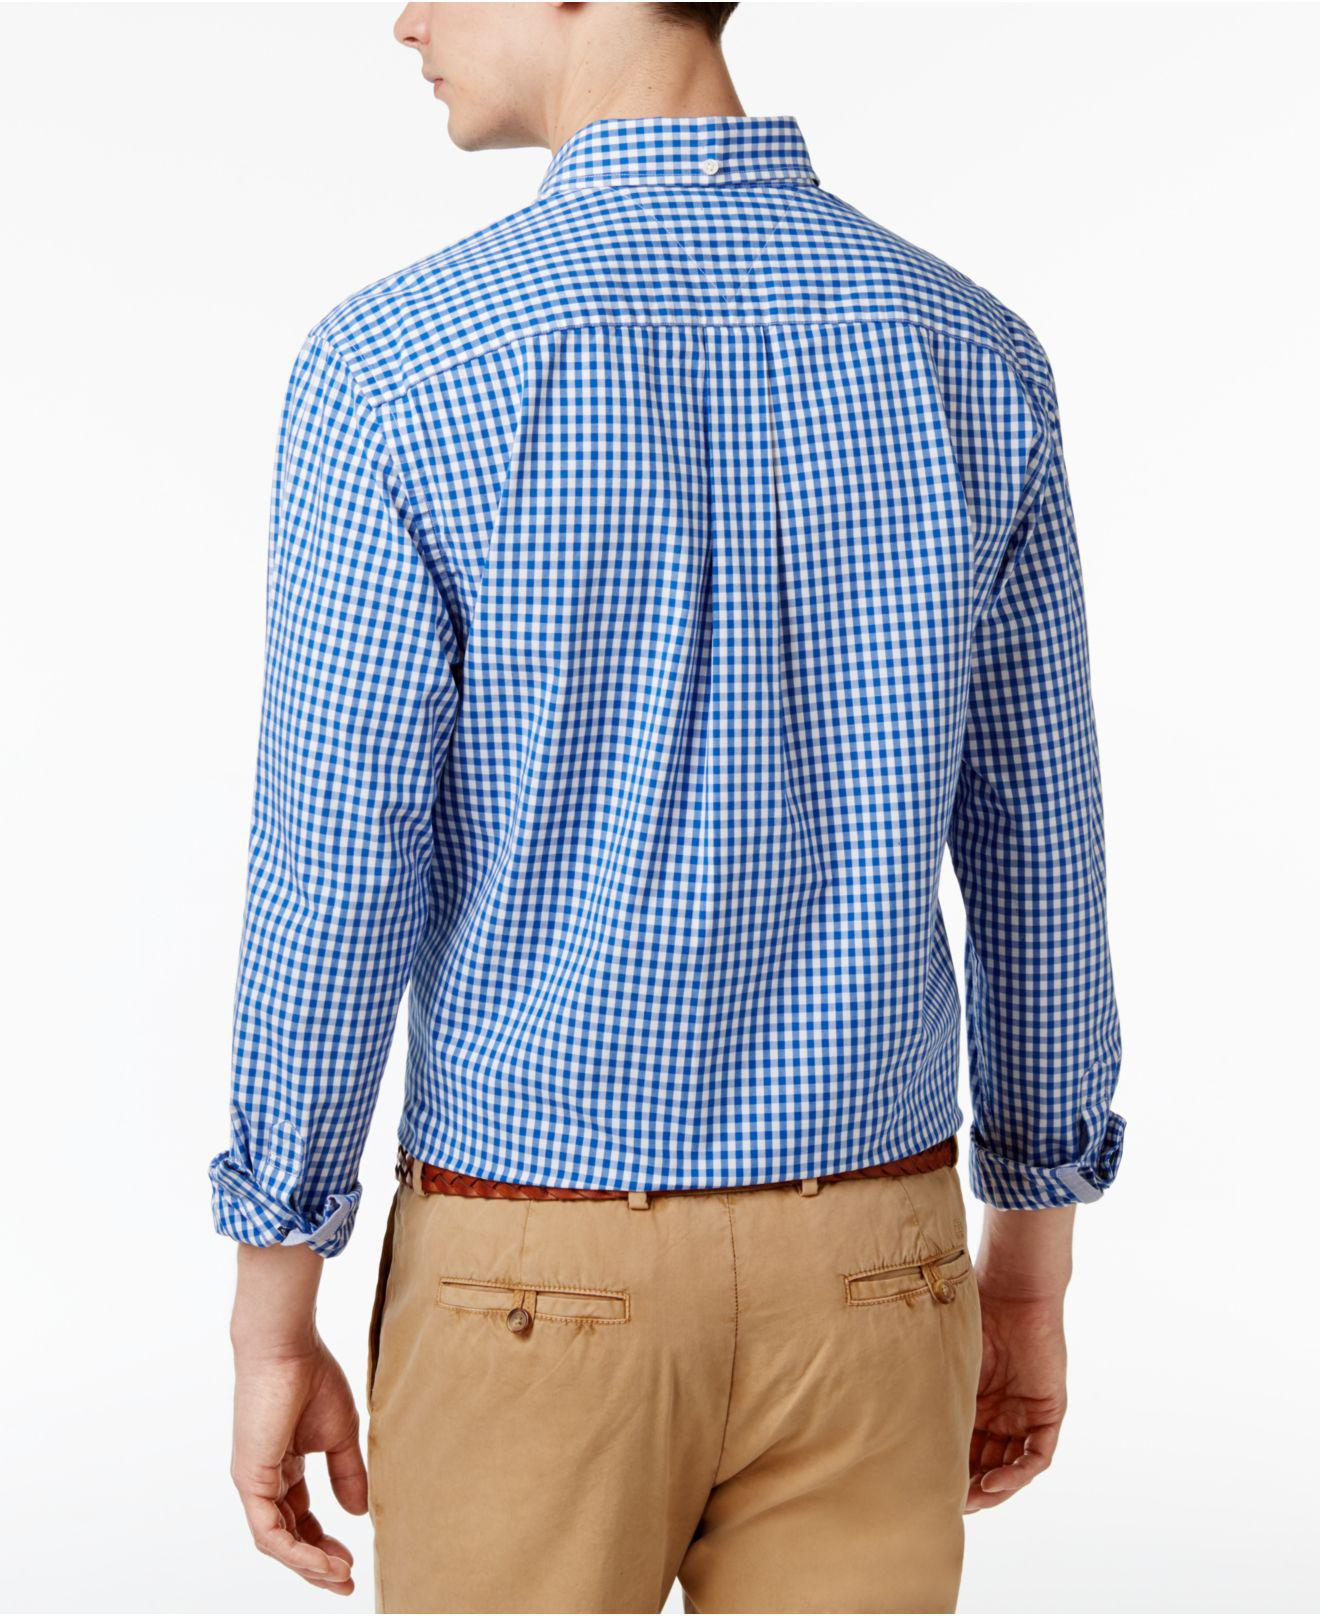 055a714ce Lyst - Tommy Hilfiger Long-sleeve Twain Gingham Check Classic Fit ...